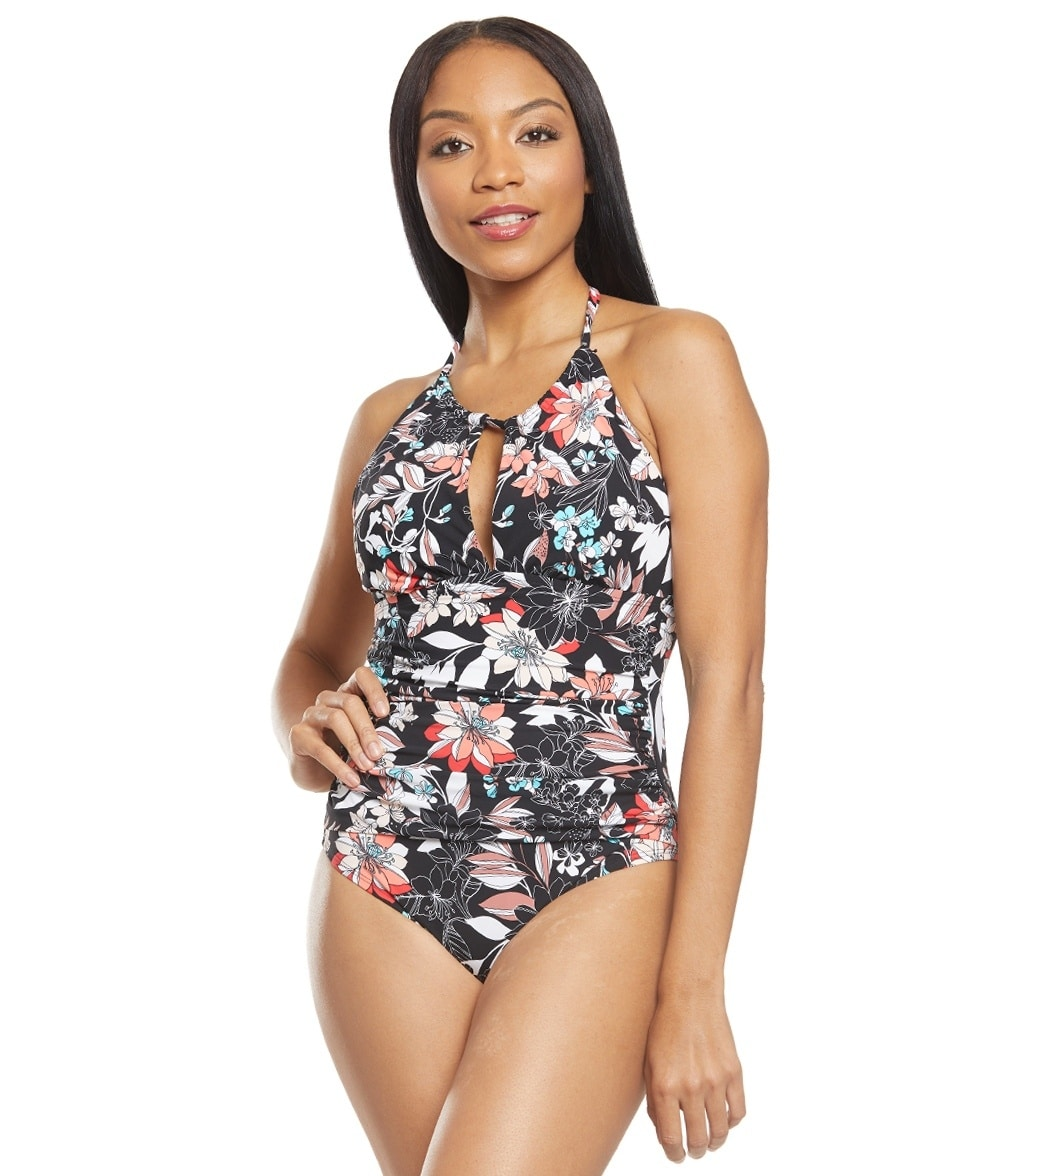 3c9f31ced1 Kenneth Cole Divine Desire Floral High Neck One Piece Swimsuit at  SwimOutlet.com - Free Shipping